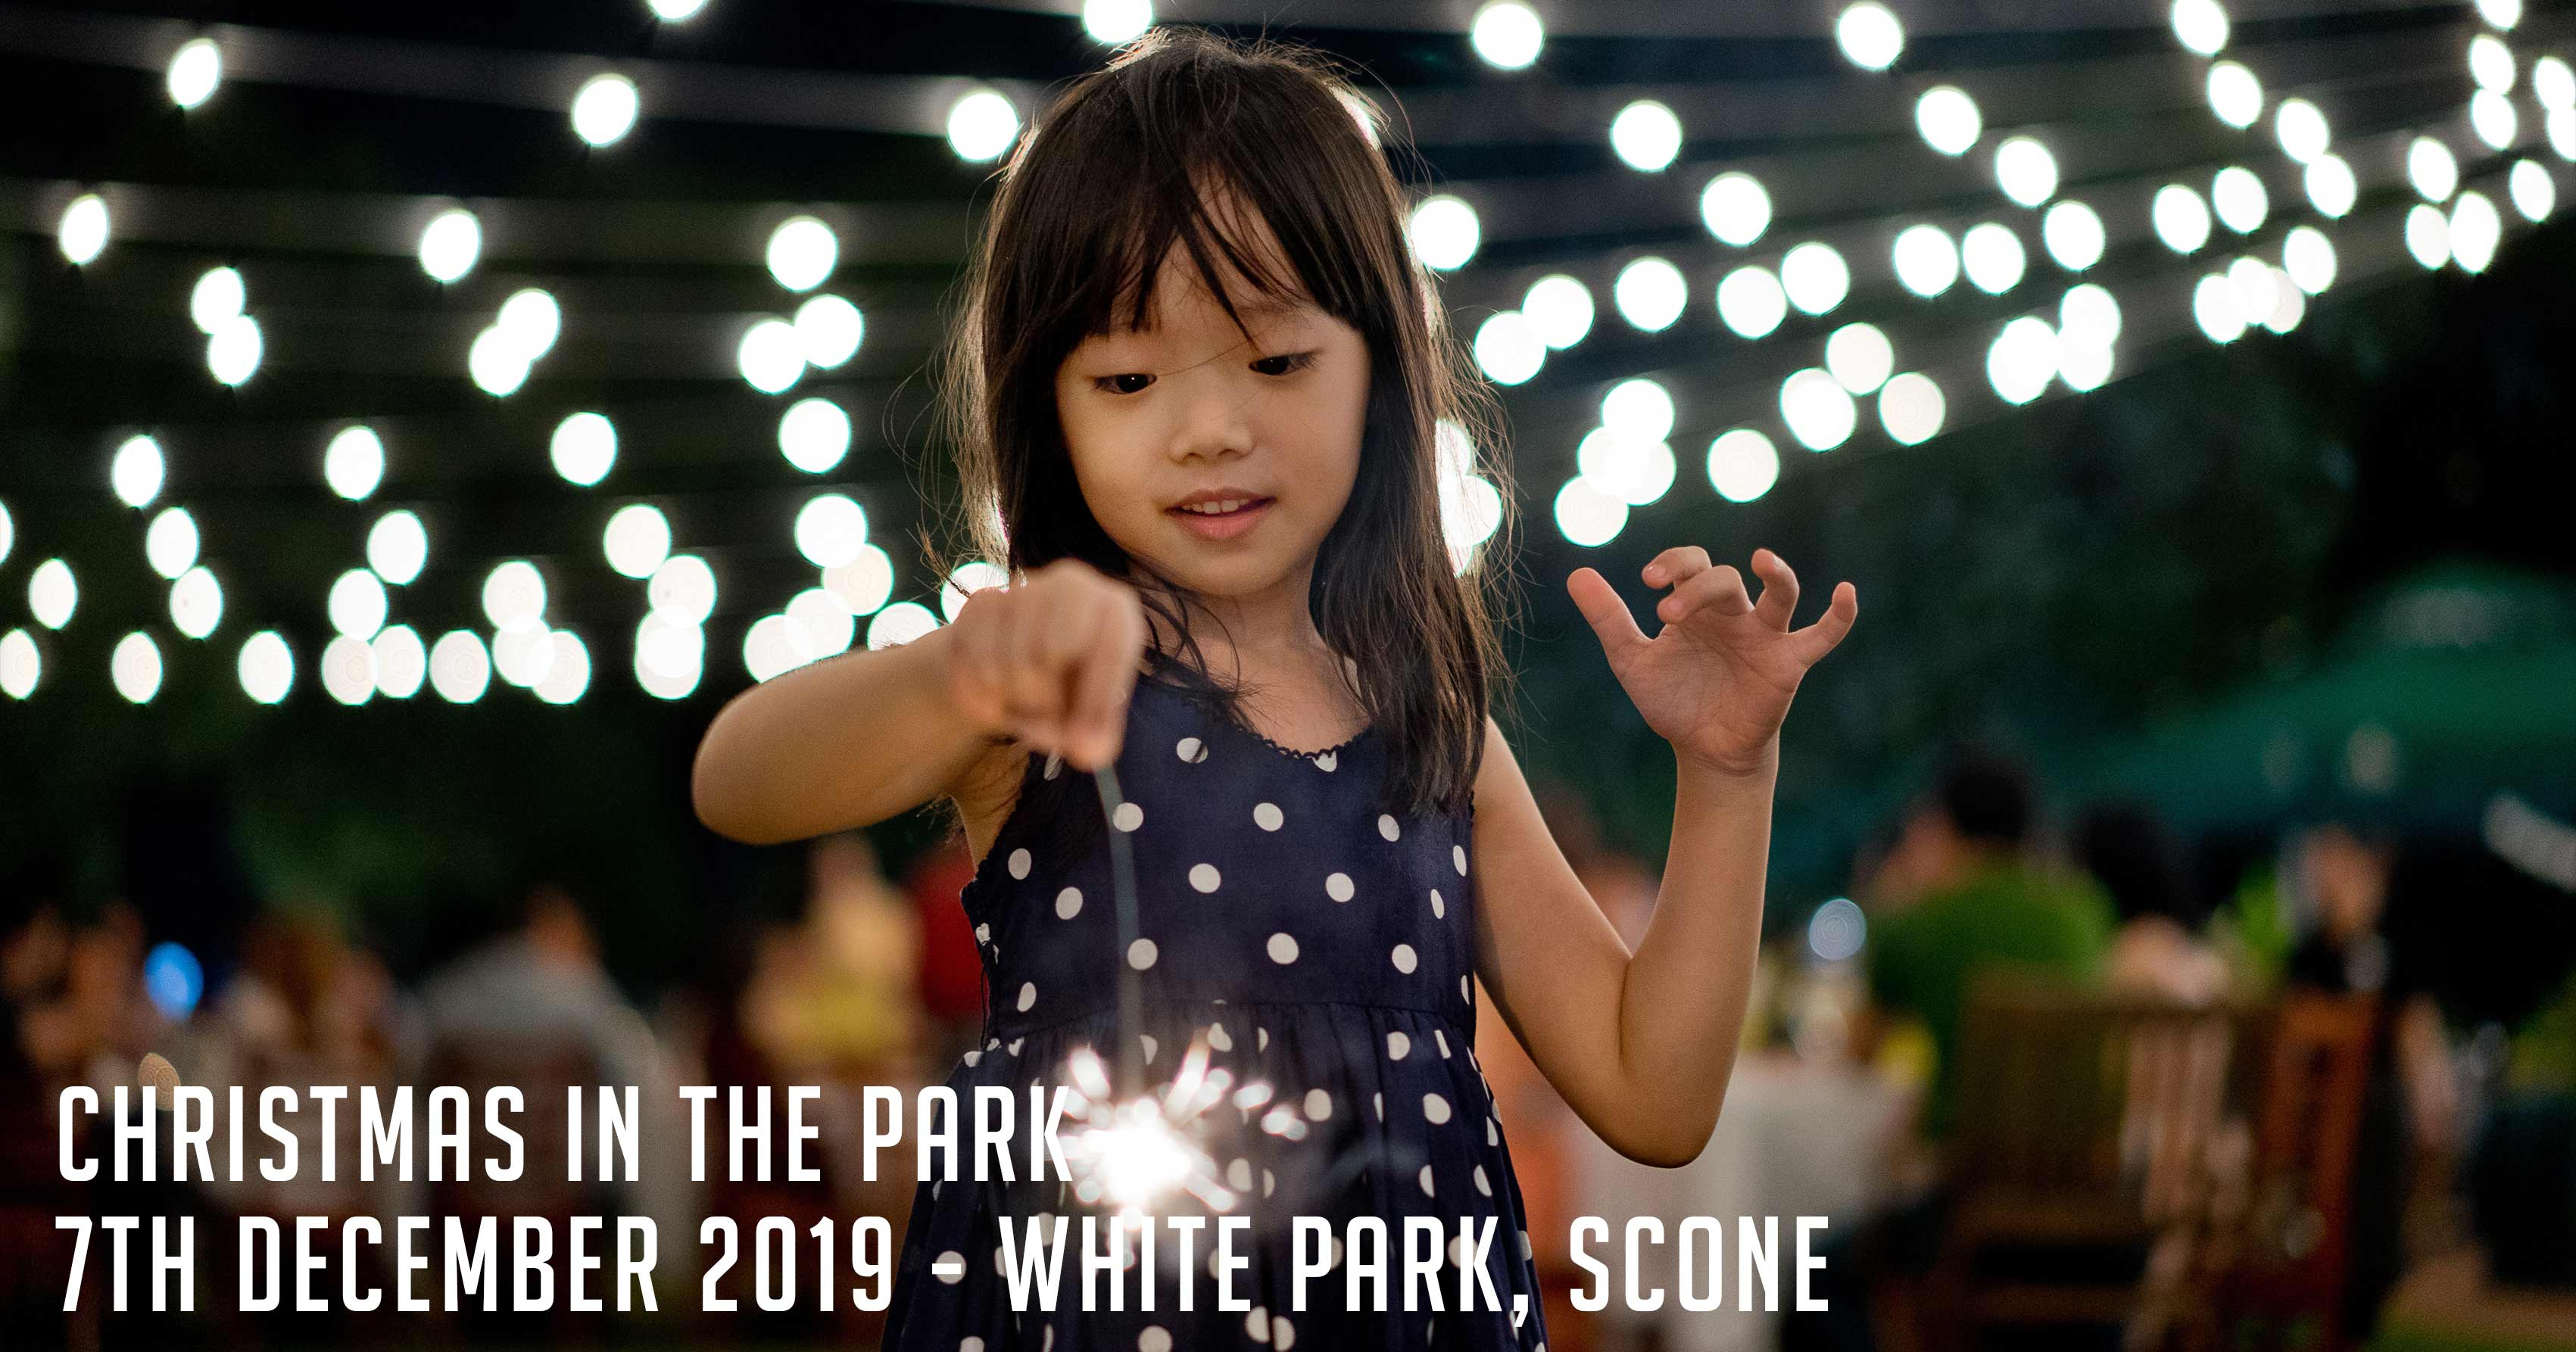 CHRISTMAS IN THE PARK - White Park Scone NSW 2019